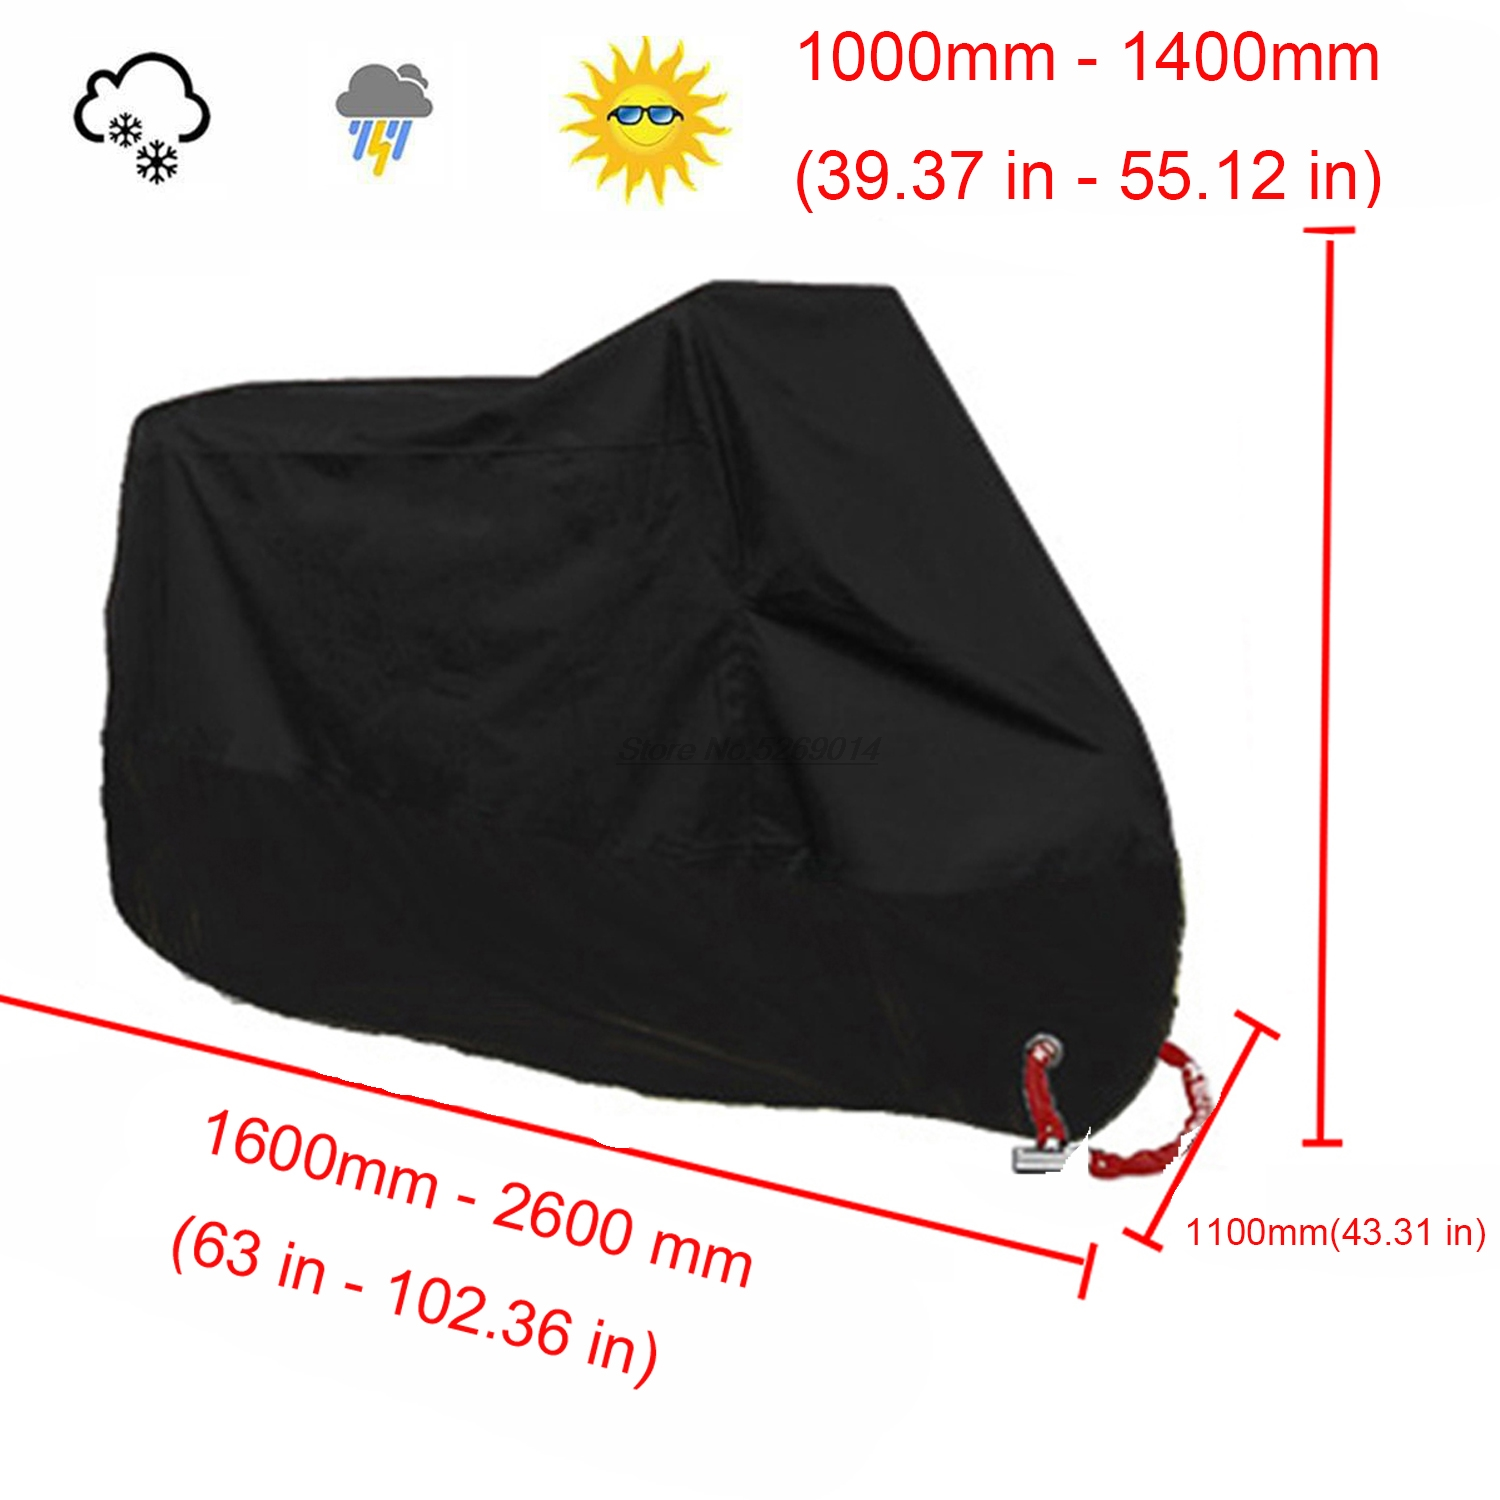 Motorcycle covers UV anti for tenere 250 <font><b>r1200</b></font> <font><b>gs</b></font> kawasaki zx12r fairings mt-09 honda cbr1000rr honda bros yamaha r1 <font><b>2004</b></font> ktm image